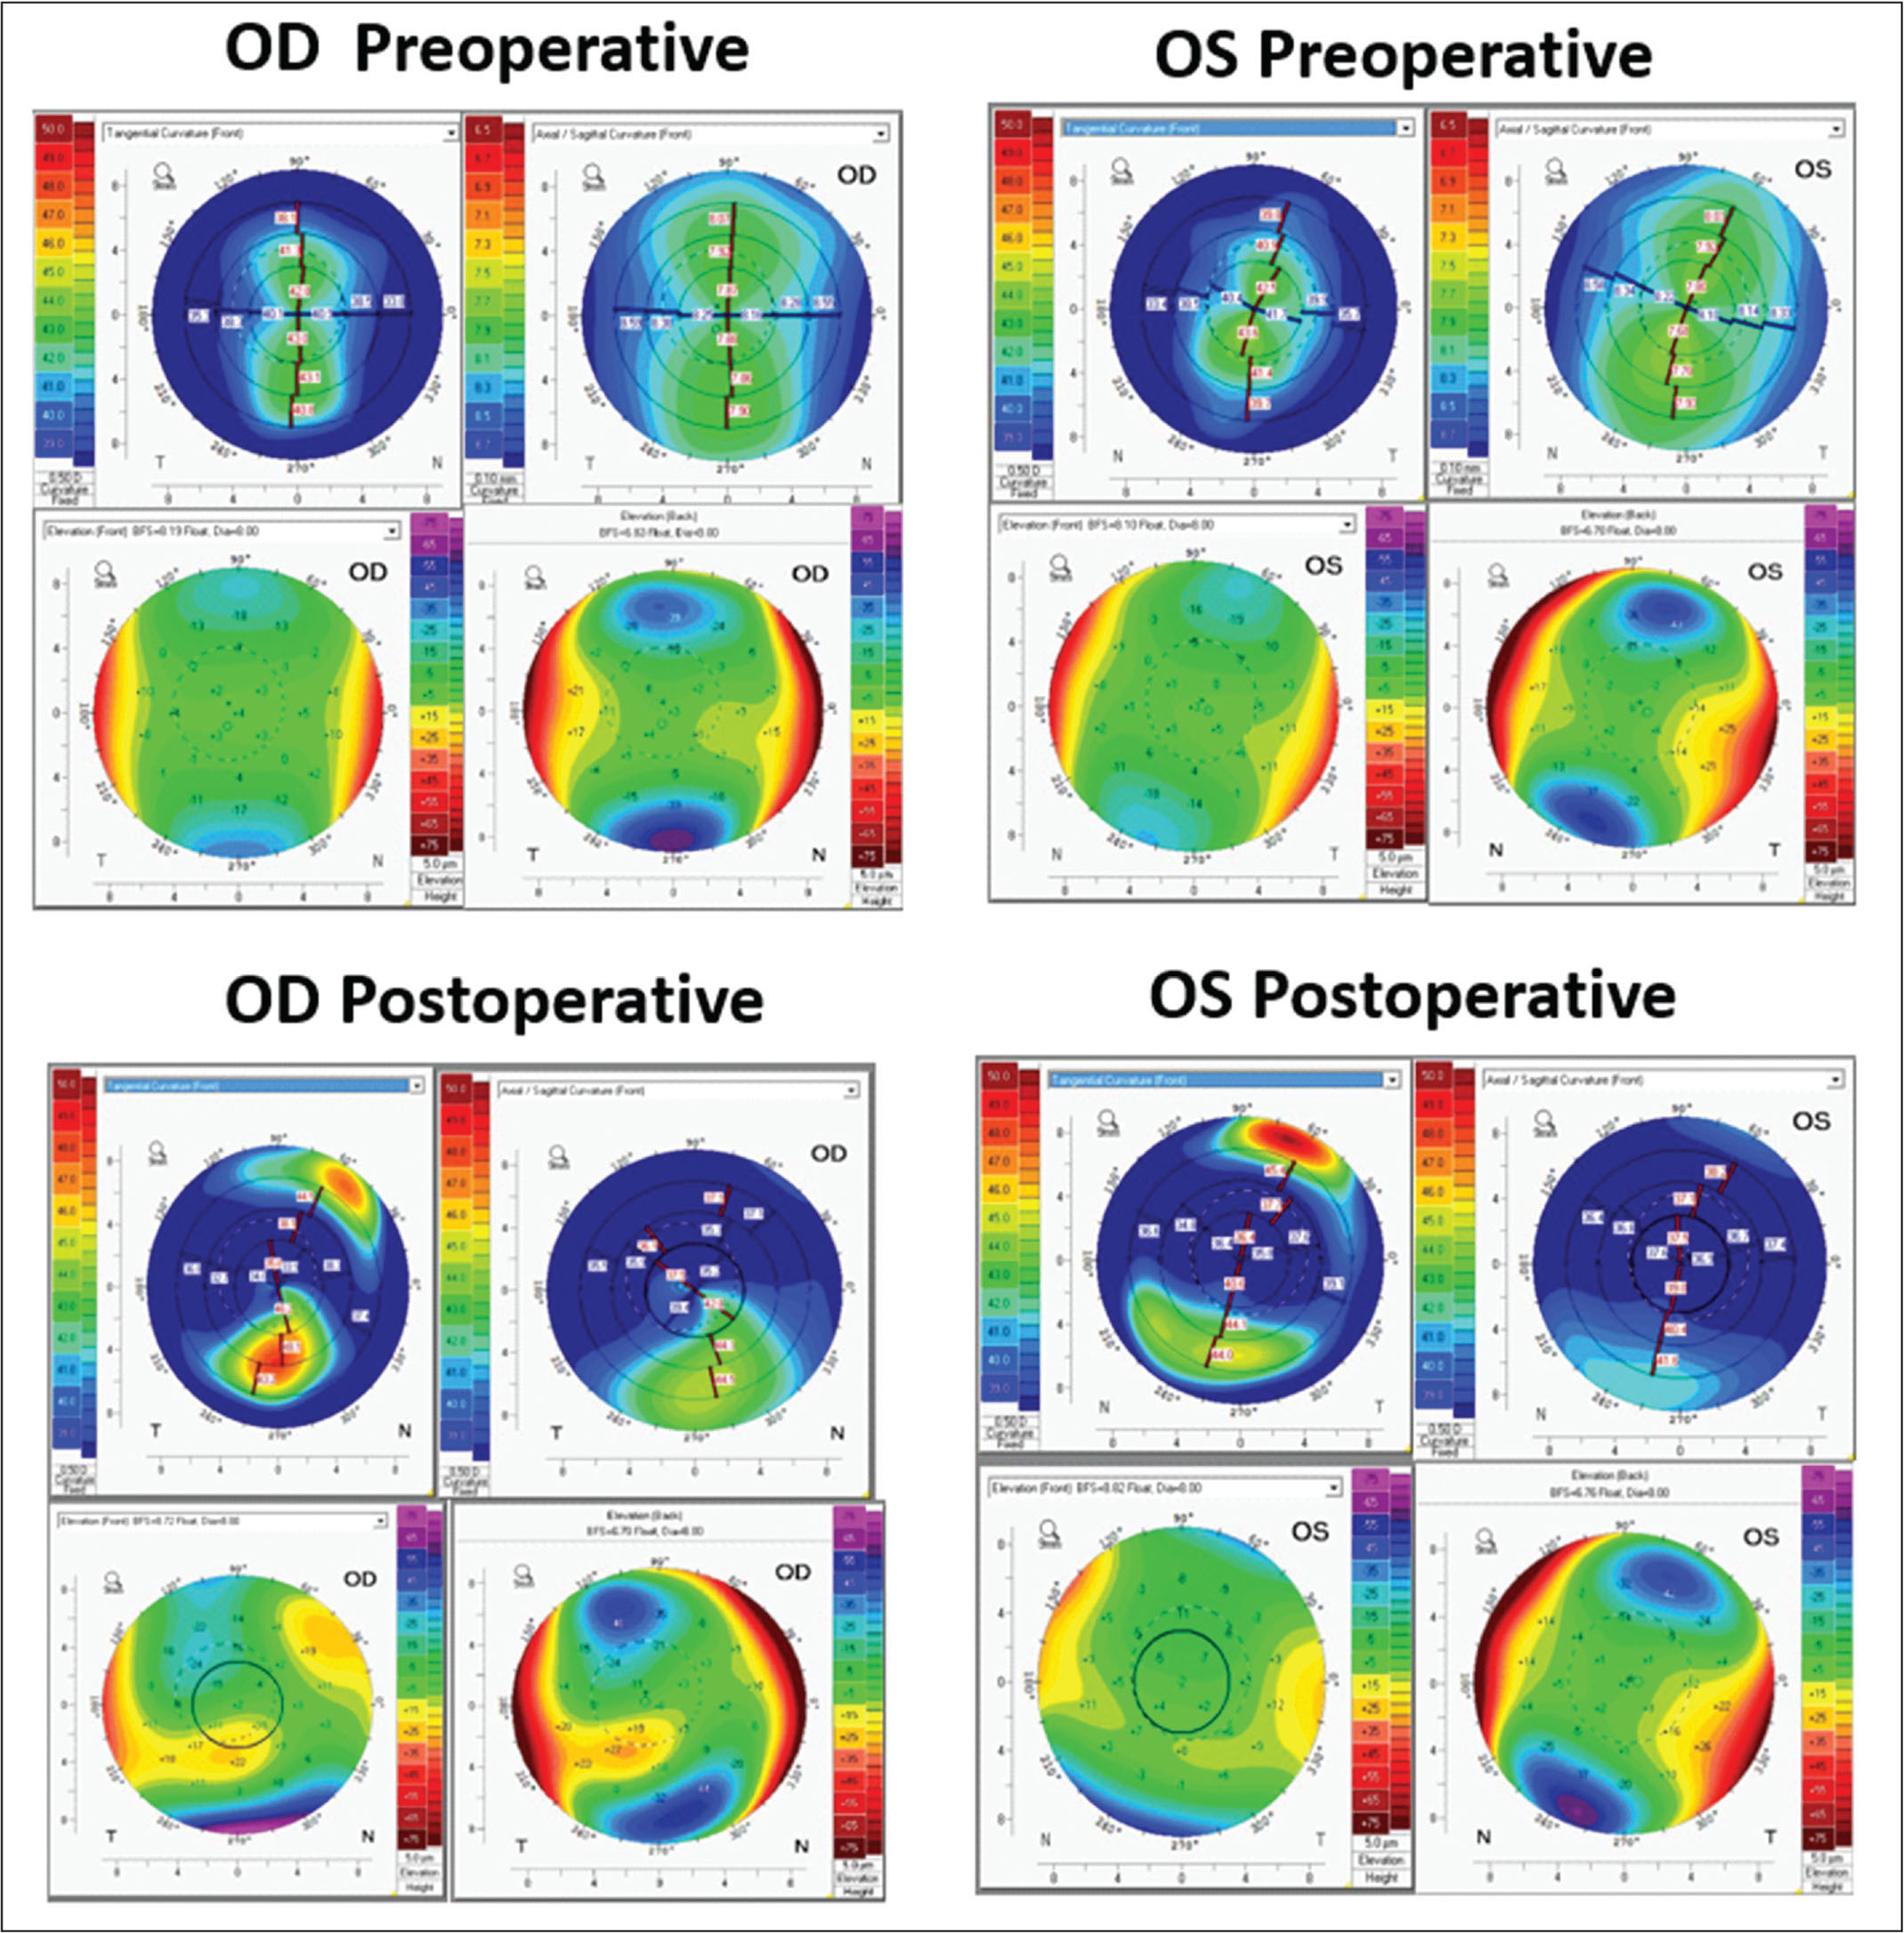 Preoperative and postoperative tomography maps from the Pentacam HR (Oculus Optikgeräte GmbH, Wetzlar, Germany) showing anterior tangential curvature, axial curvature, back and front elevation (clockwise order from top left). Preoperative differences were minimal between the (A) right (OD) and (B) left (OS) eye. Postoperatively, differential inferior steepening is seen in the (C) ectatic right eye in comparison to the (D) stable left eye.